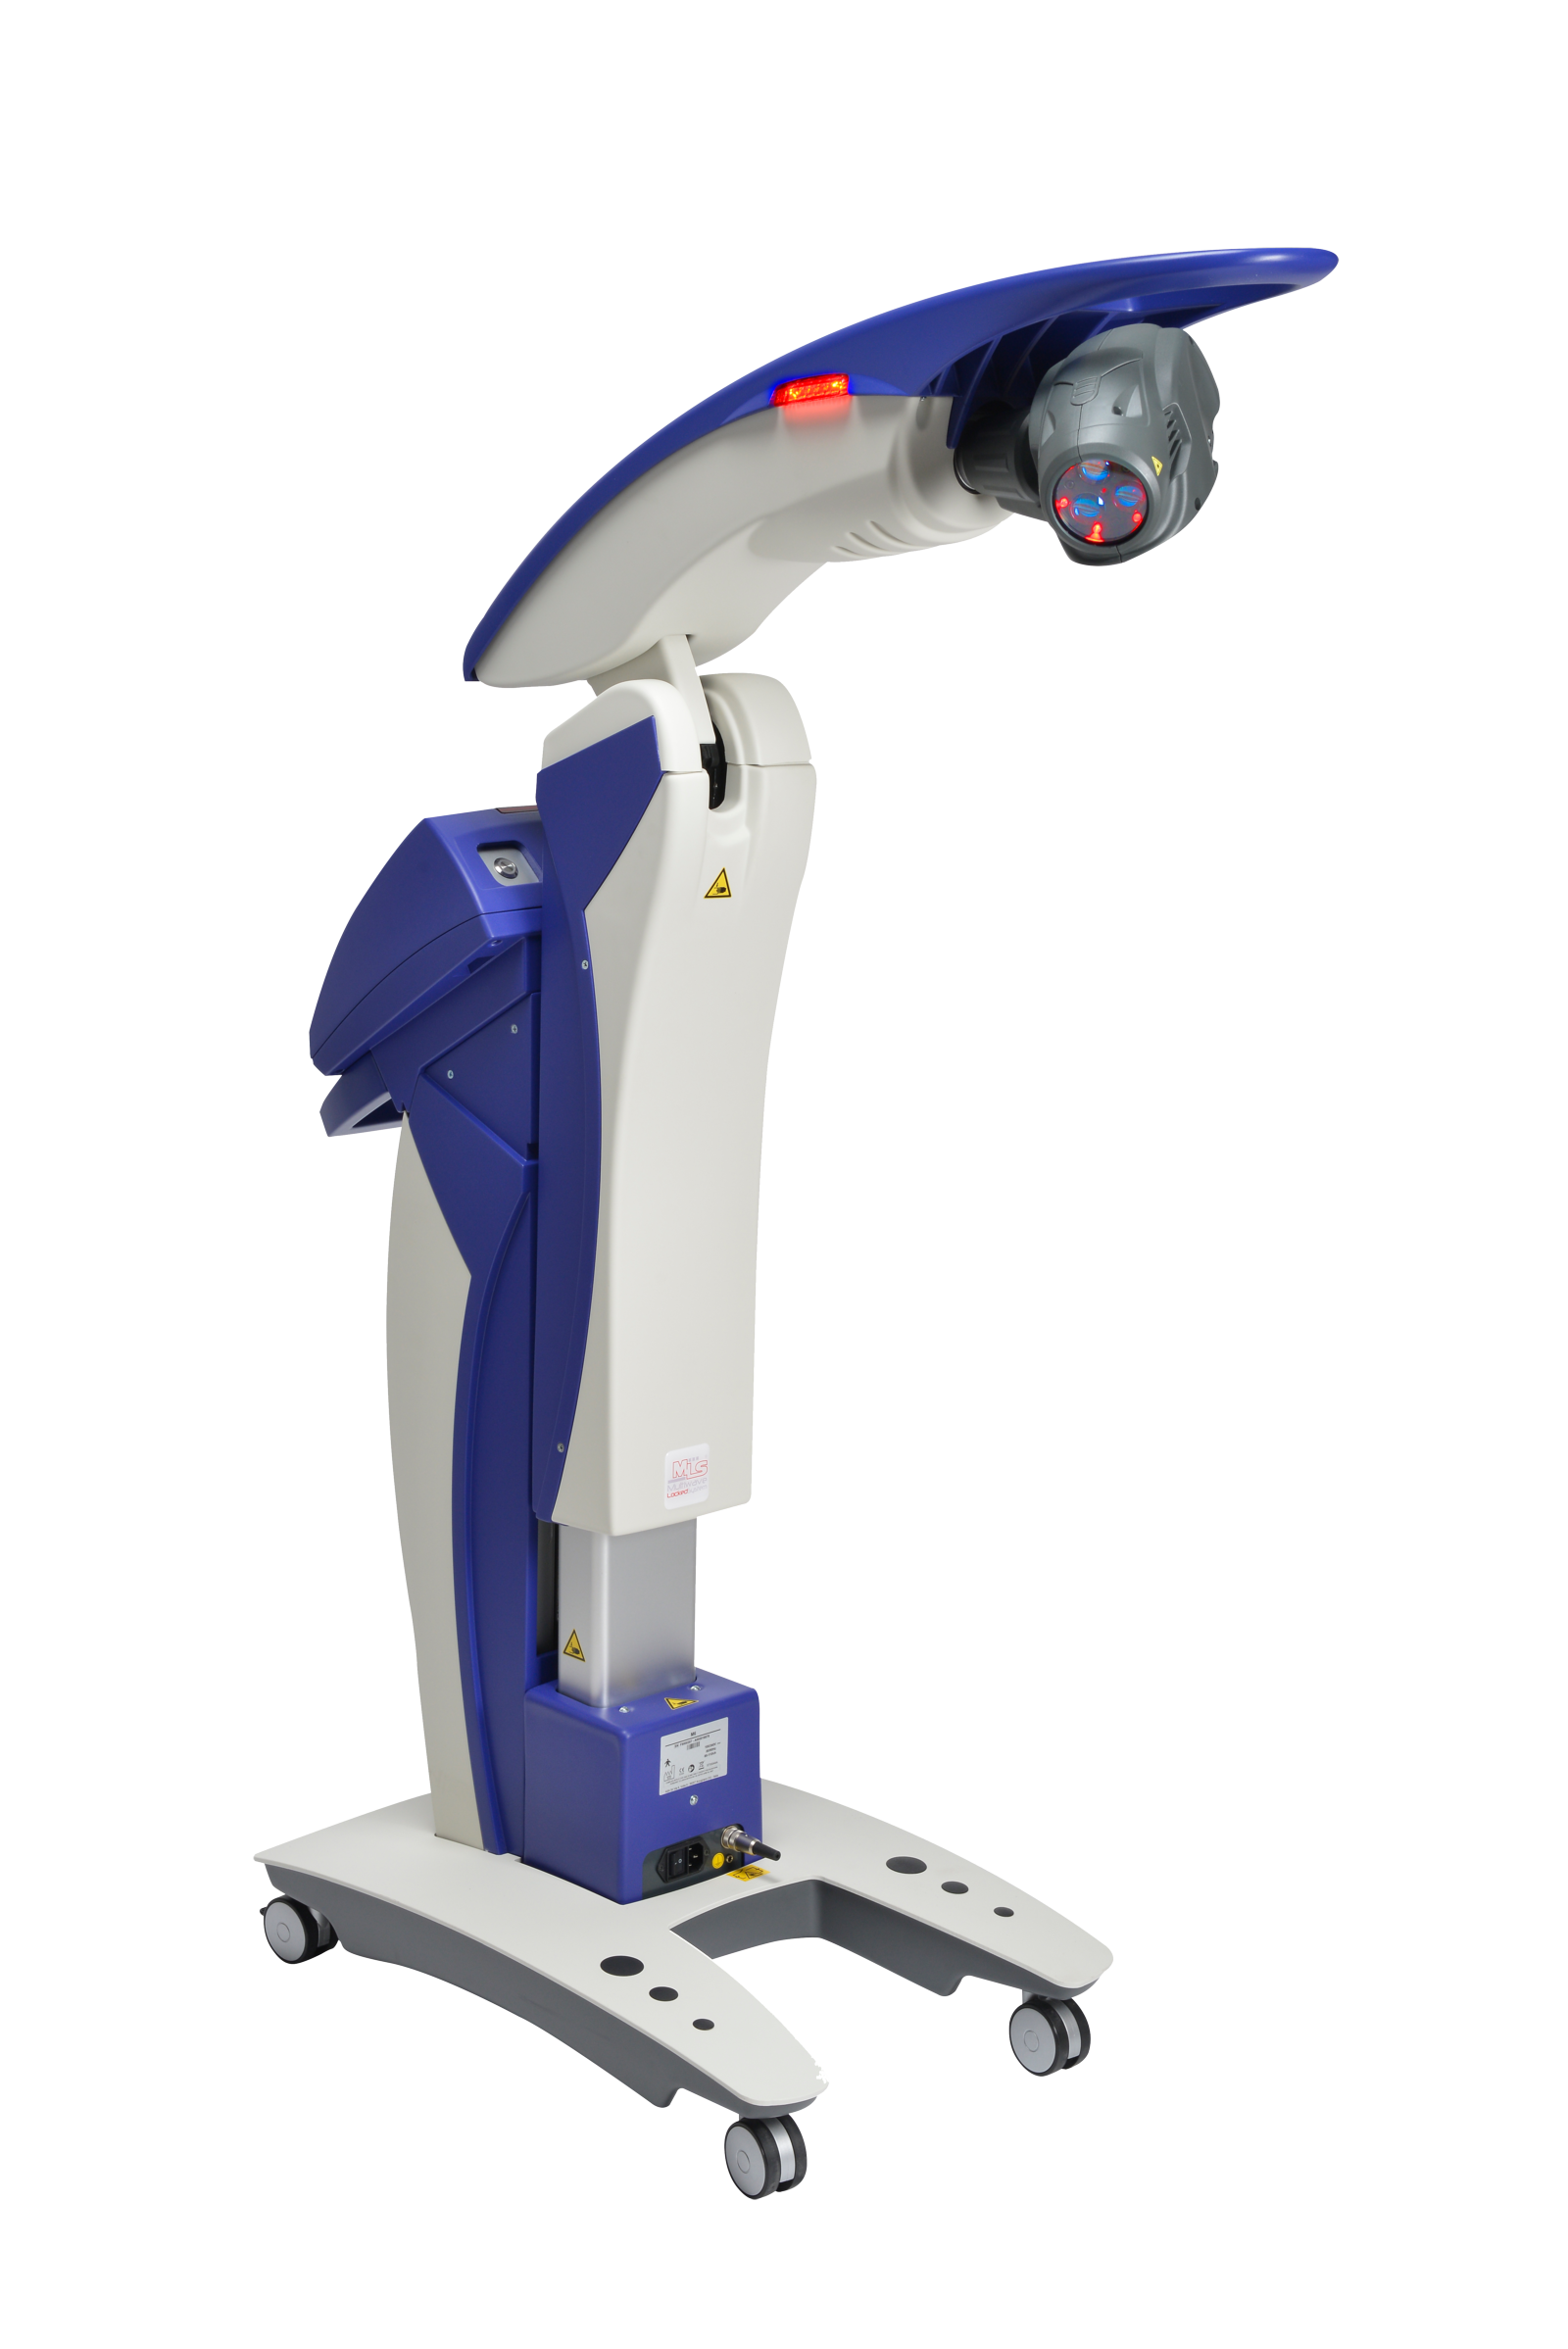 image of the MLS Laser - a blue and white tall, thin machine with a grey head and is on wheels